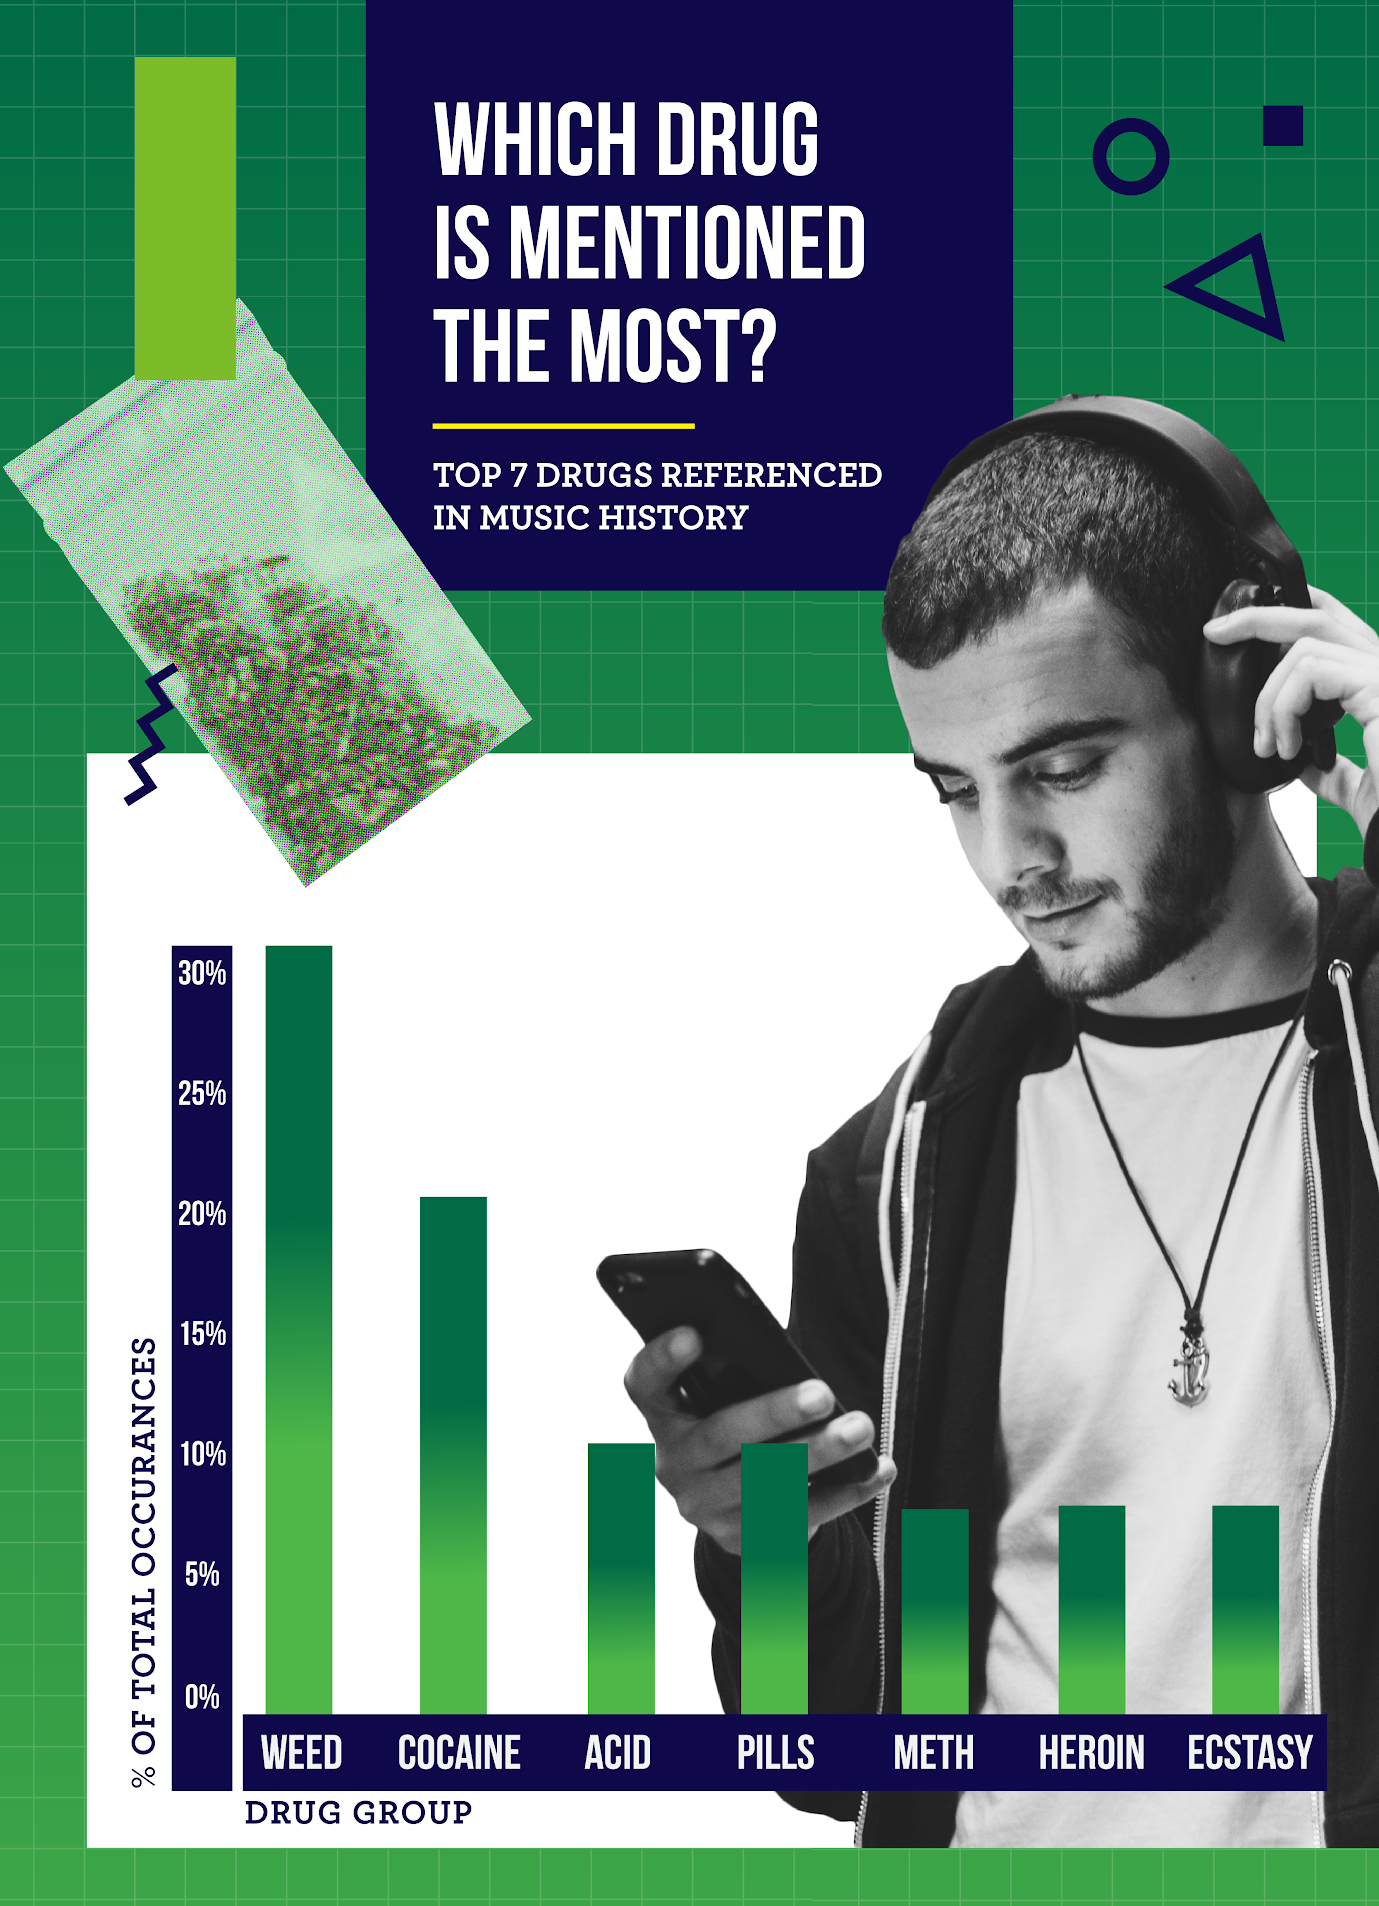 Marijuana is mentioned the most in music